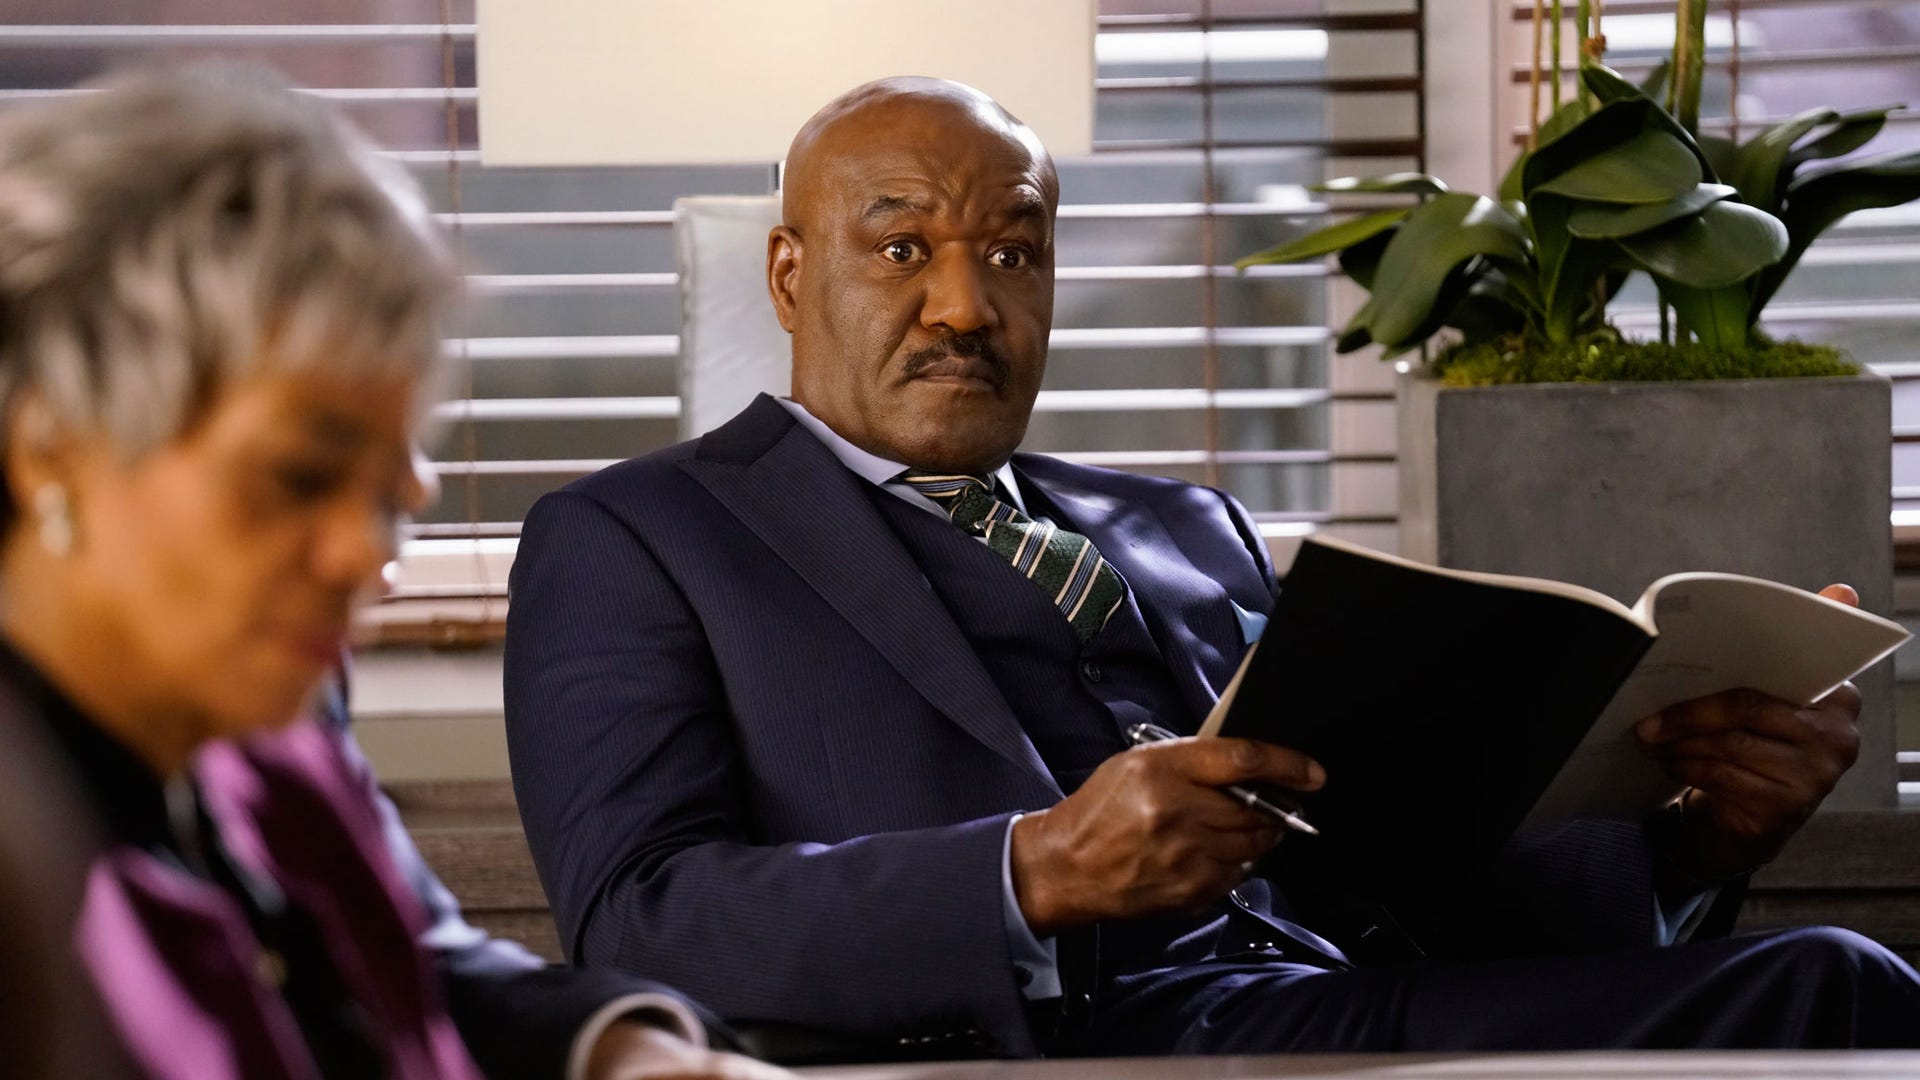 Delroy Lindo, The Good Fight